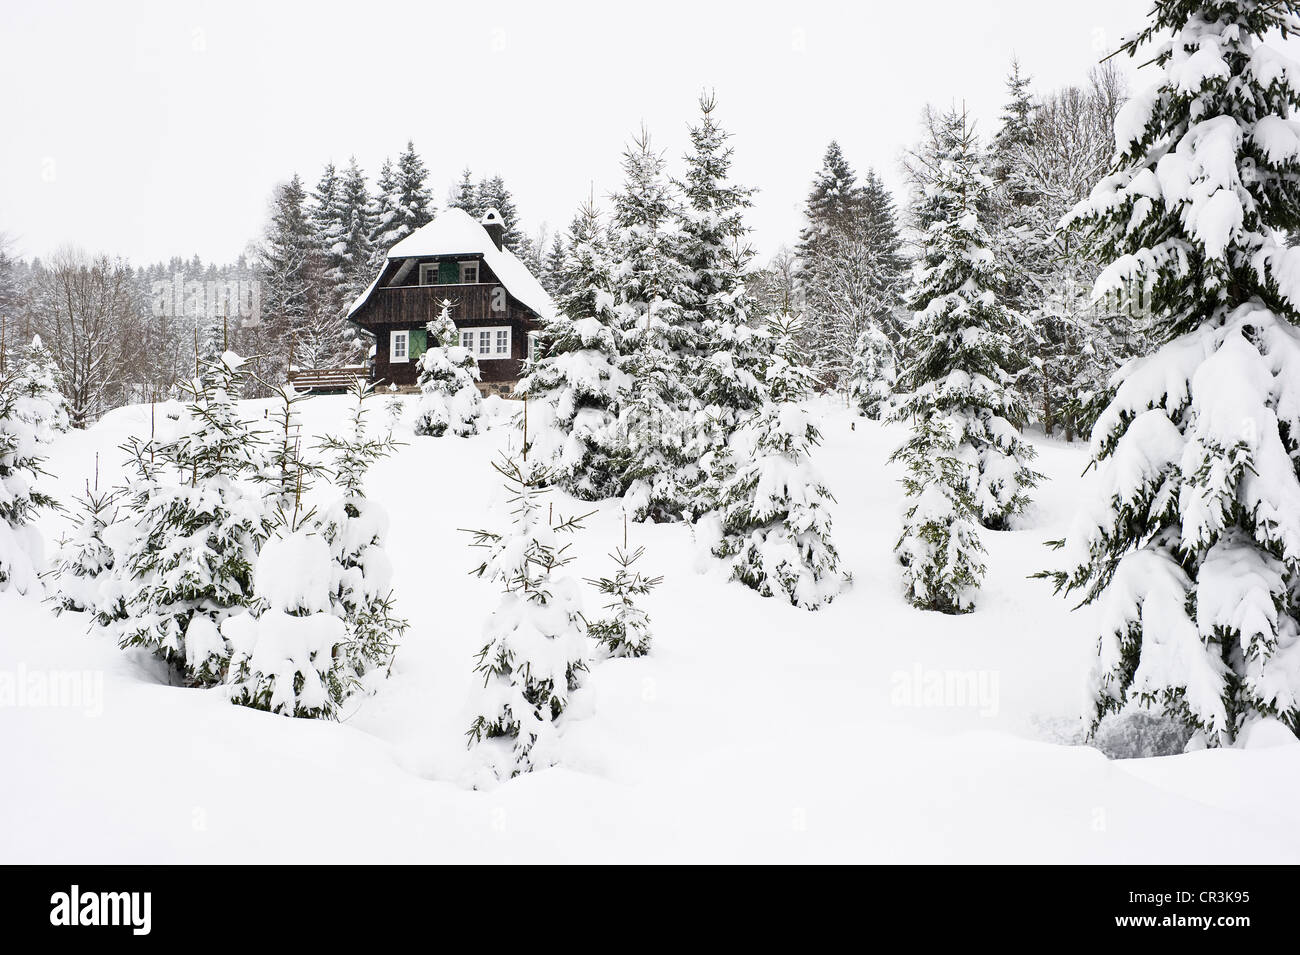 Snow-covered firs and lodge at Hinterzarten, Black Forest, Baden-Wuerttemberg, Germany, Europe - Stock Image